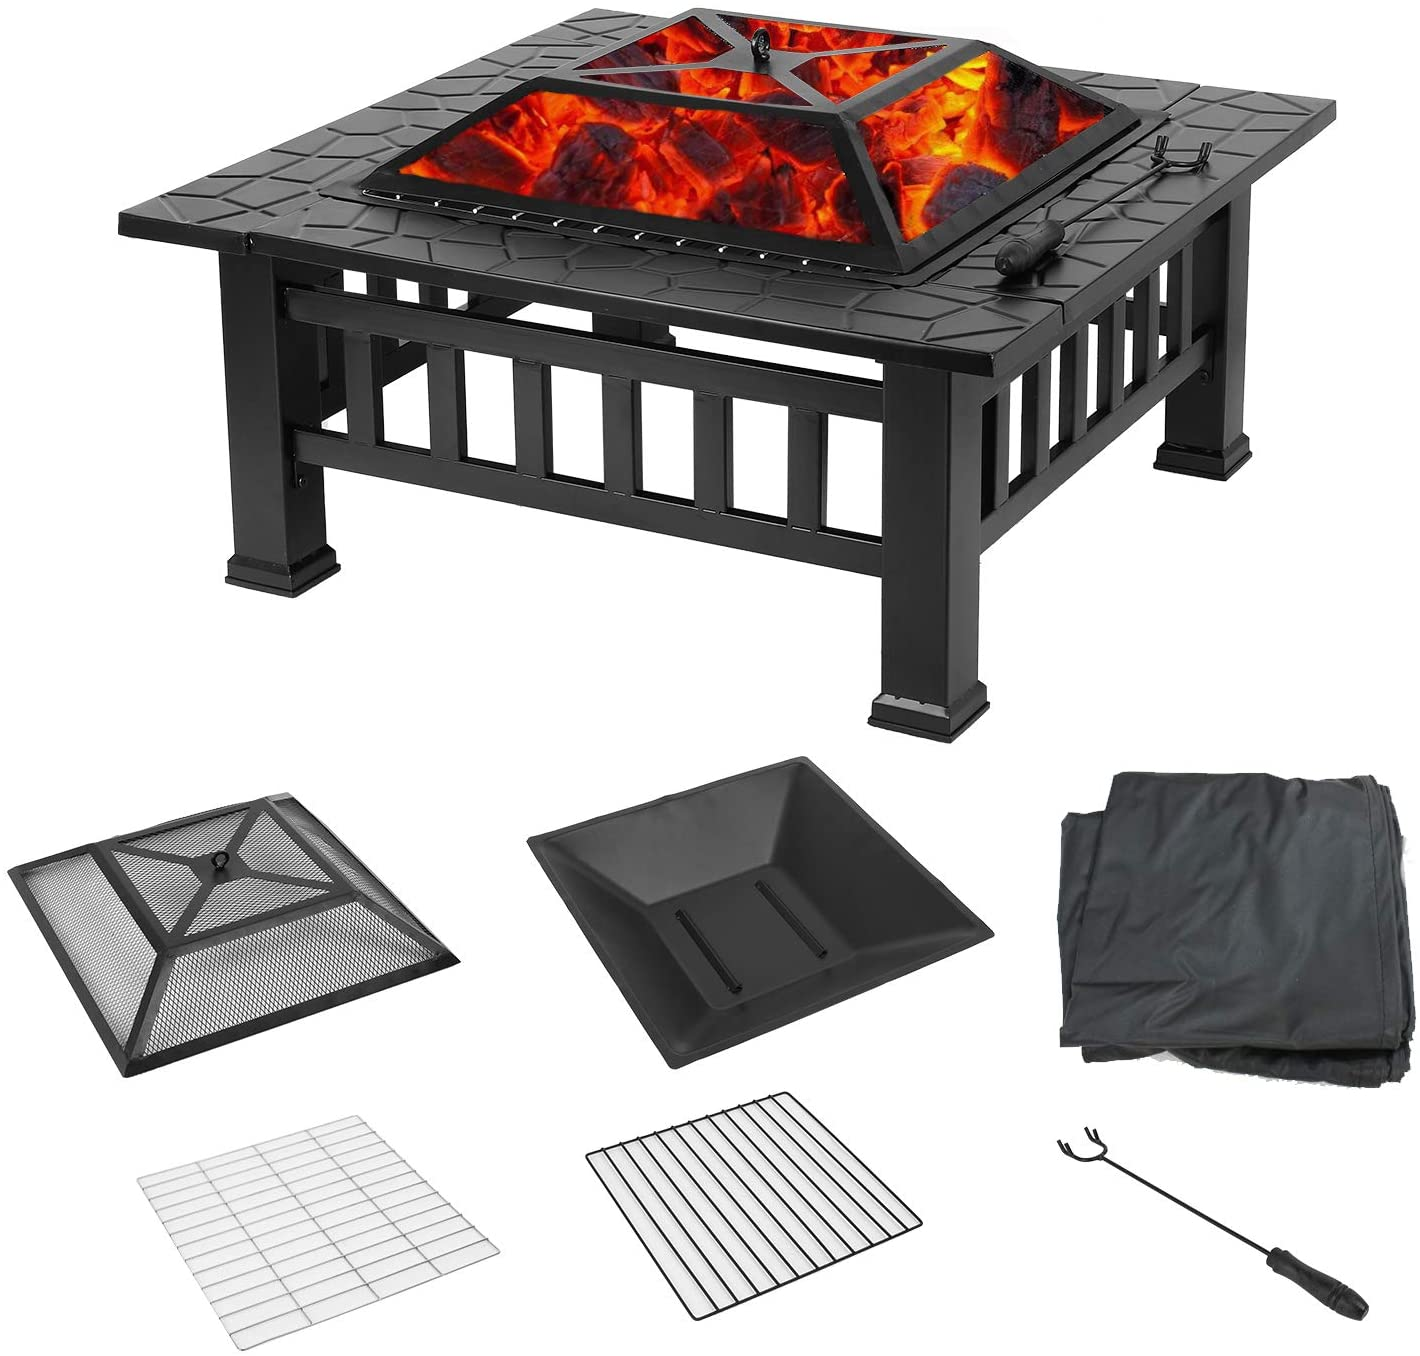 Portable Custom Fire Pit Bbq Garden Firepit Table Dinning Sets For Sale Buy Firepit Tables Garden Firepit Table Dinning Sets Dining Table With Firepit Product On Alibaba Com